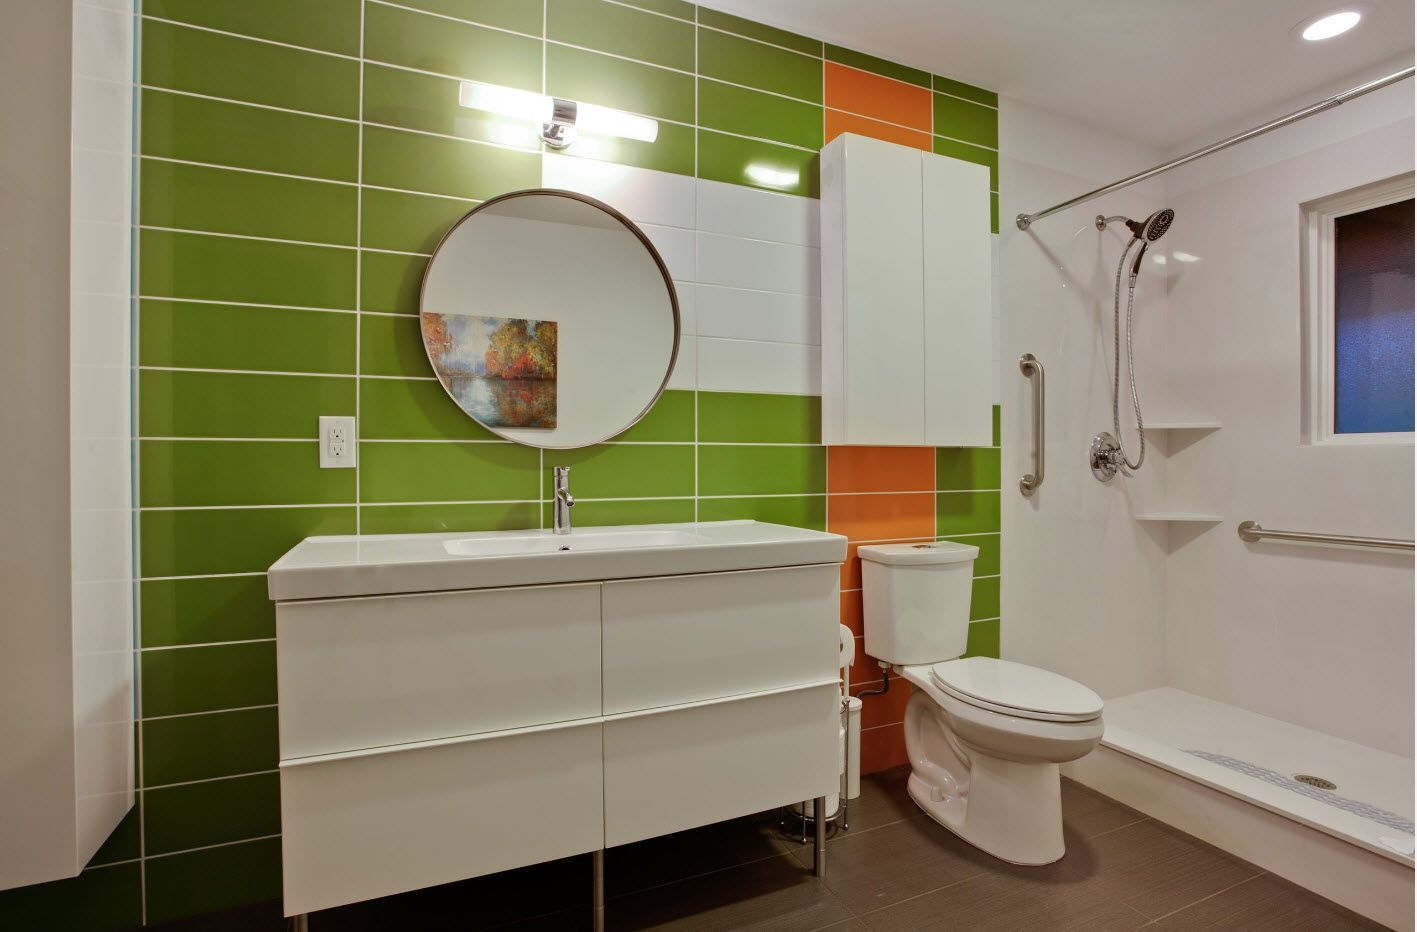 Green accent wall for the bathroom with orange line emphasizing the toilet zone